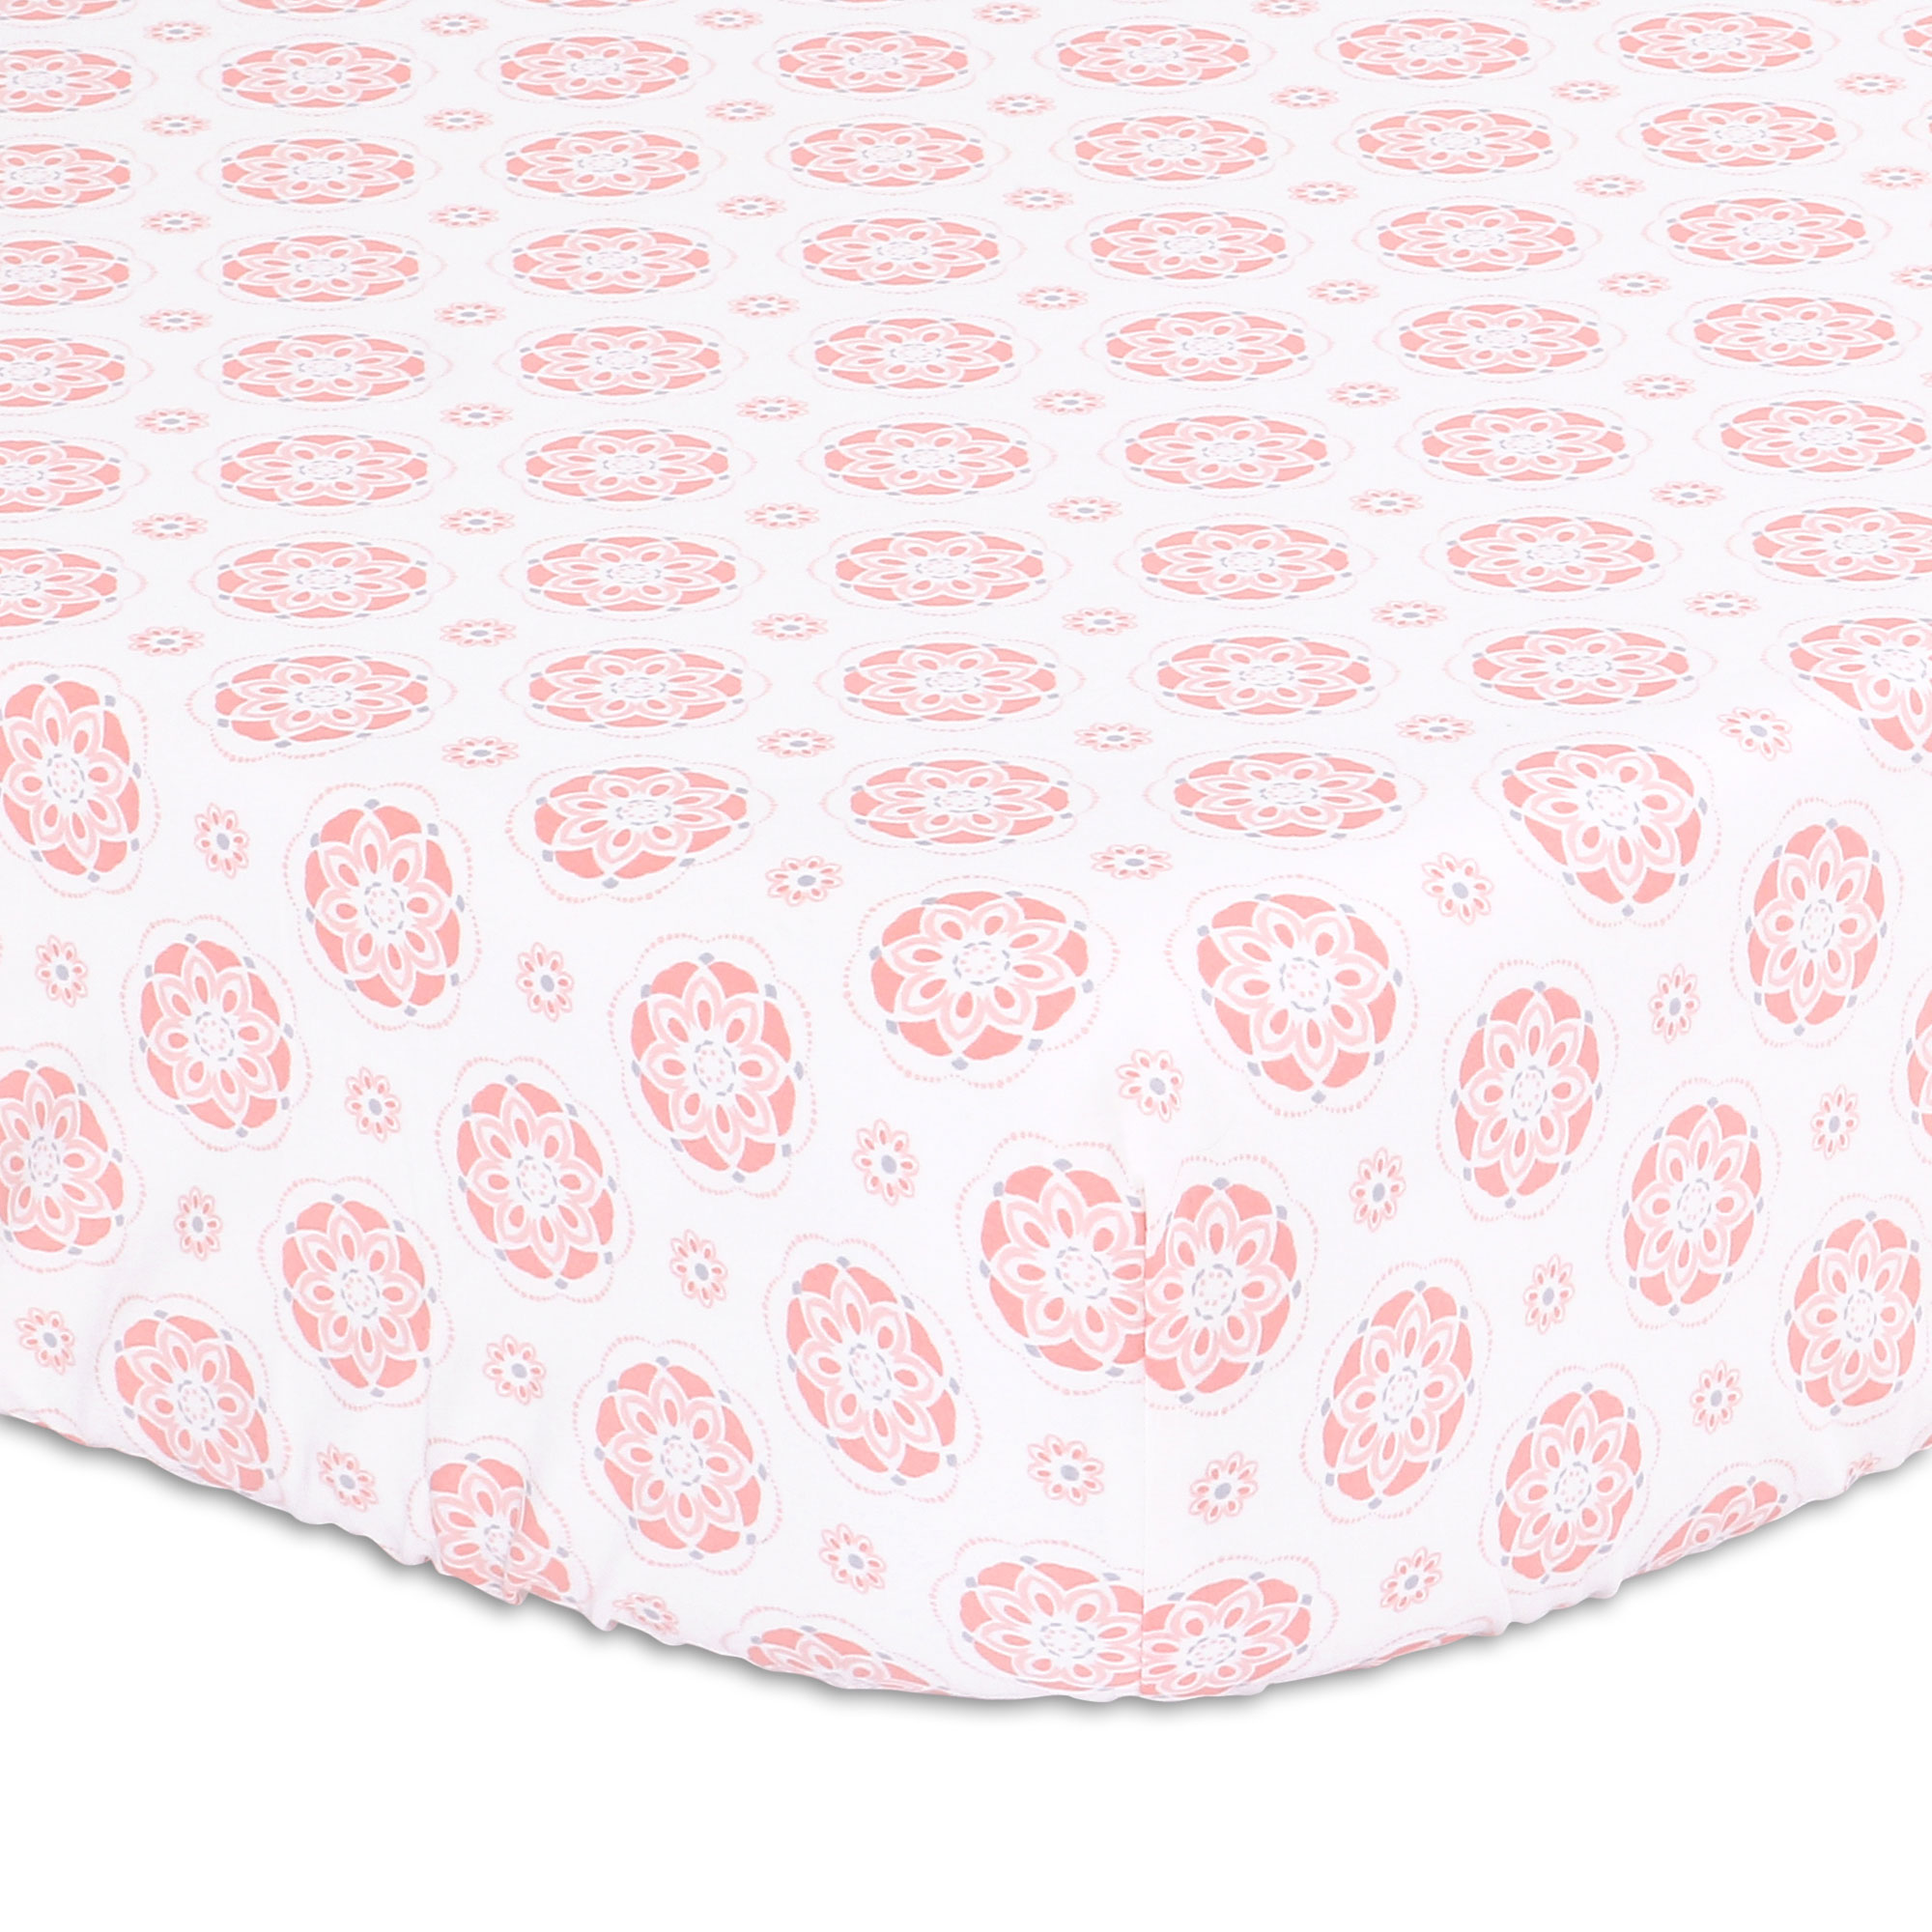 Coral Pink Starstruck Baby Girl Floral Medallion Fitted Crib Sheet